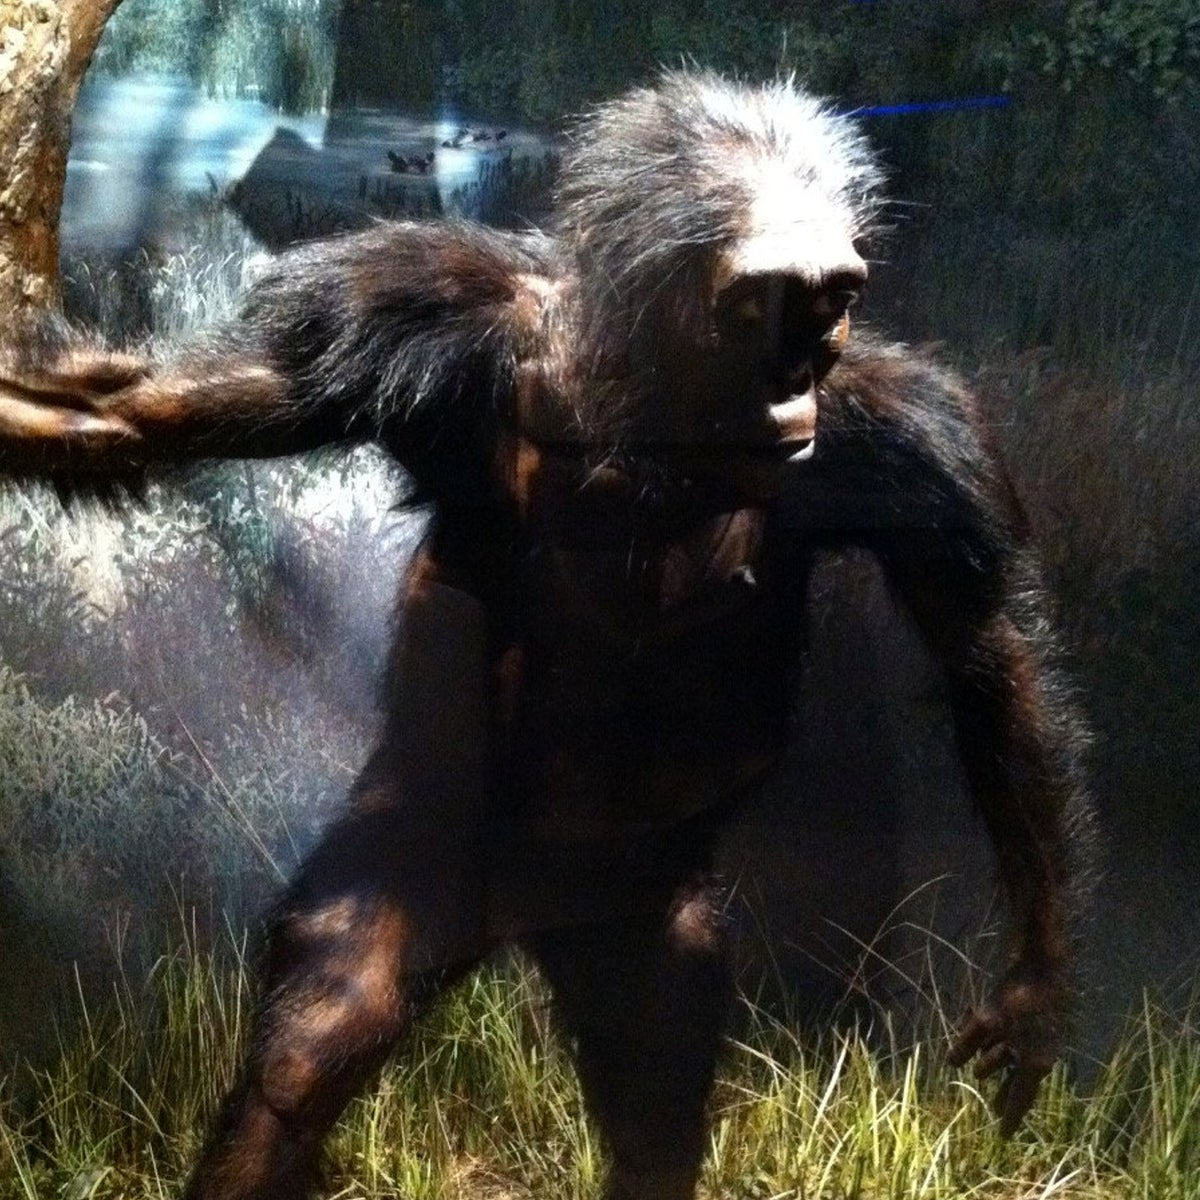 Another reconstruction of Lucy the Australophitecus, Natural History Museum, Washington DC, USA